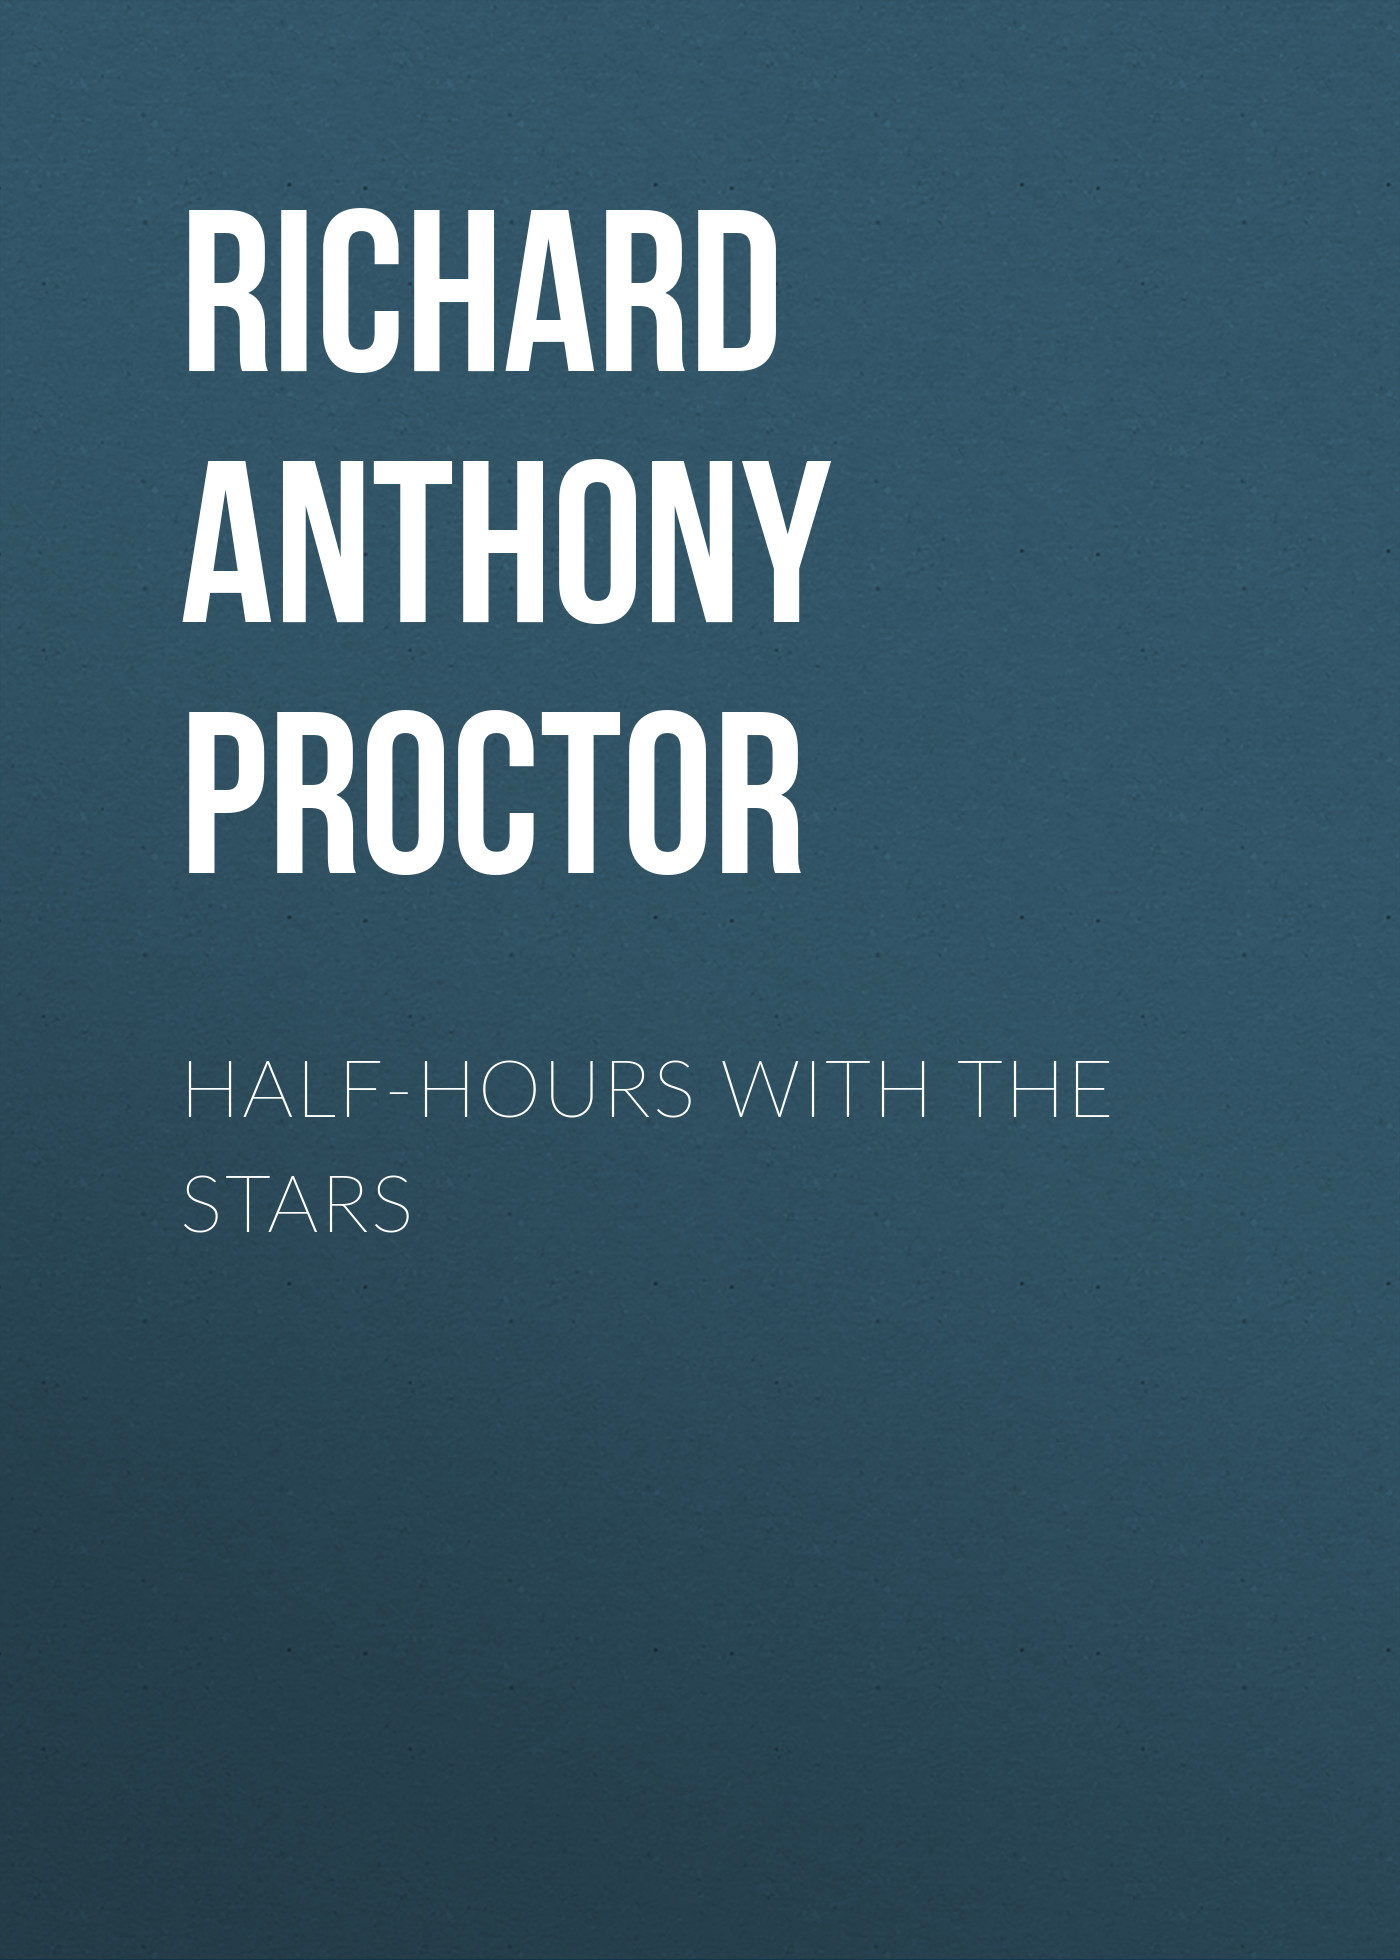 Richard Anthony Proctor Half-Hours with the Stars